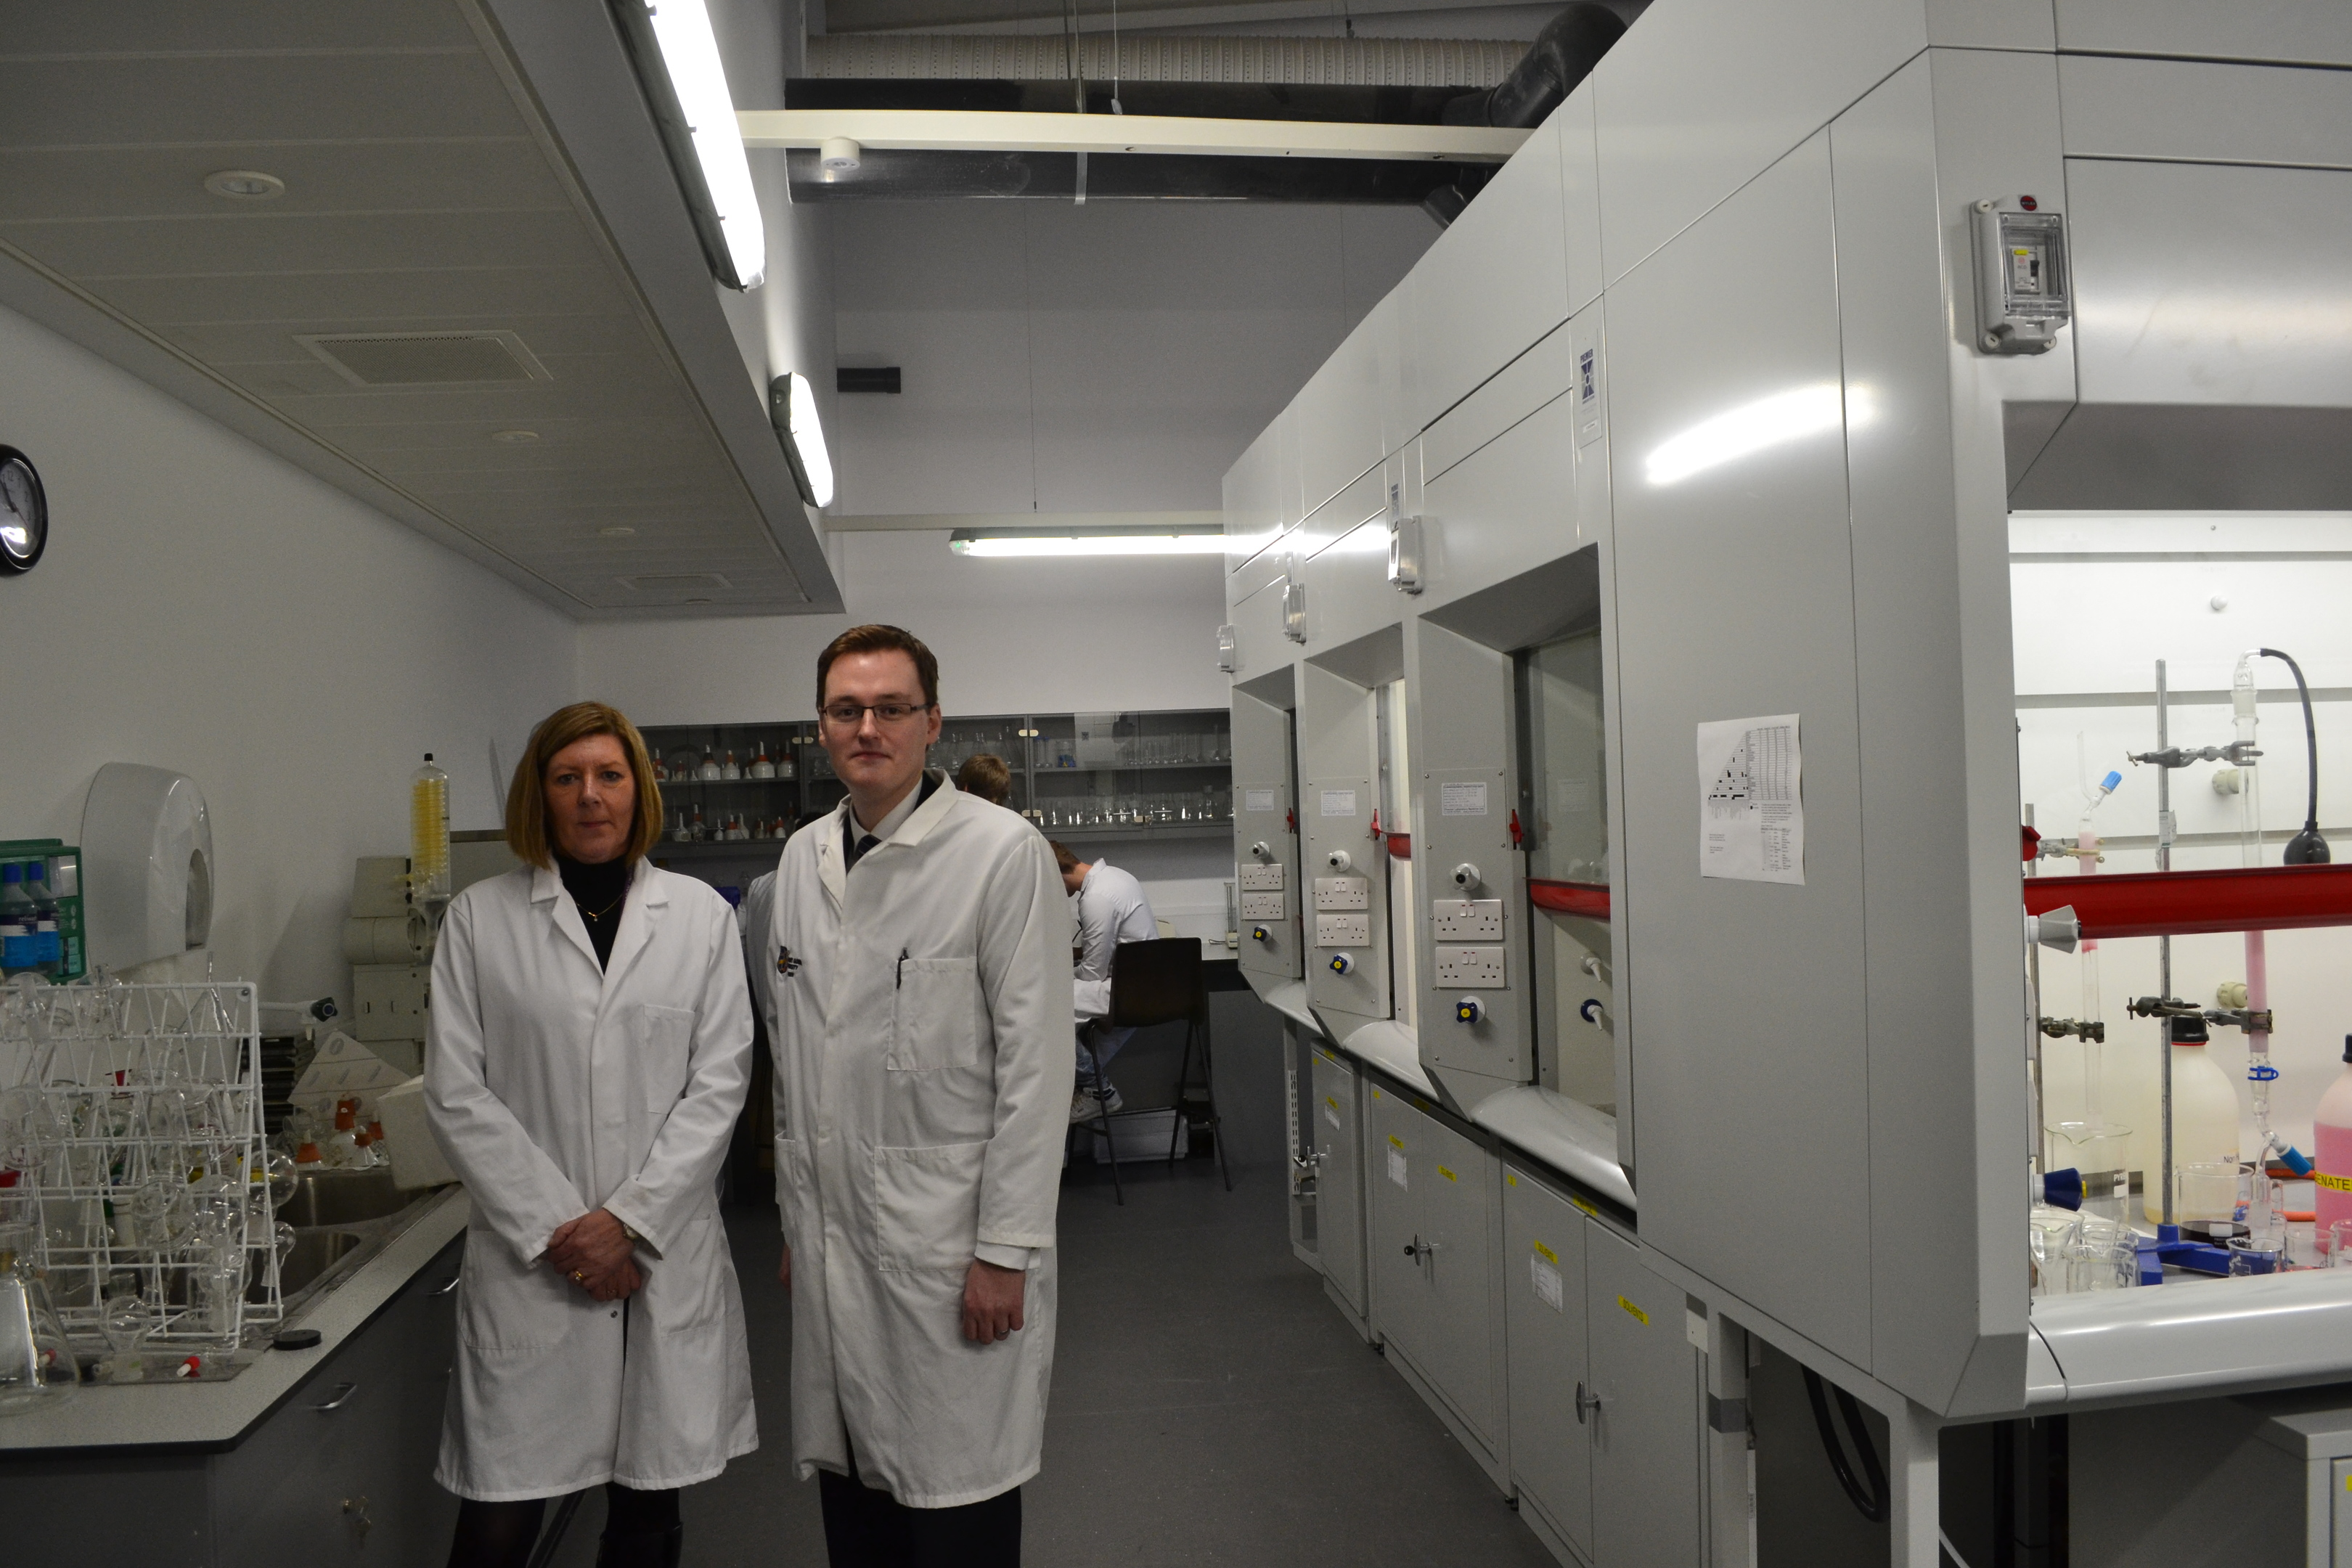 Professor Cherry Wainright, Director of the Institute for Health & Wellbeing at Robert Gordon University and Robbie Ross, counter terrorism security adviser with Police Scotland, at the university labs